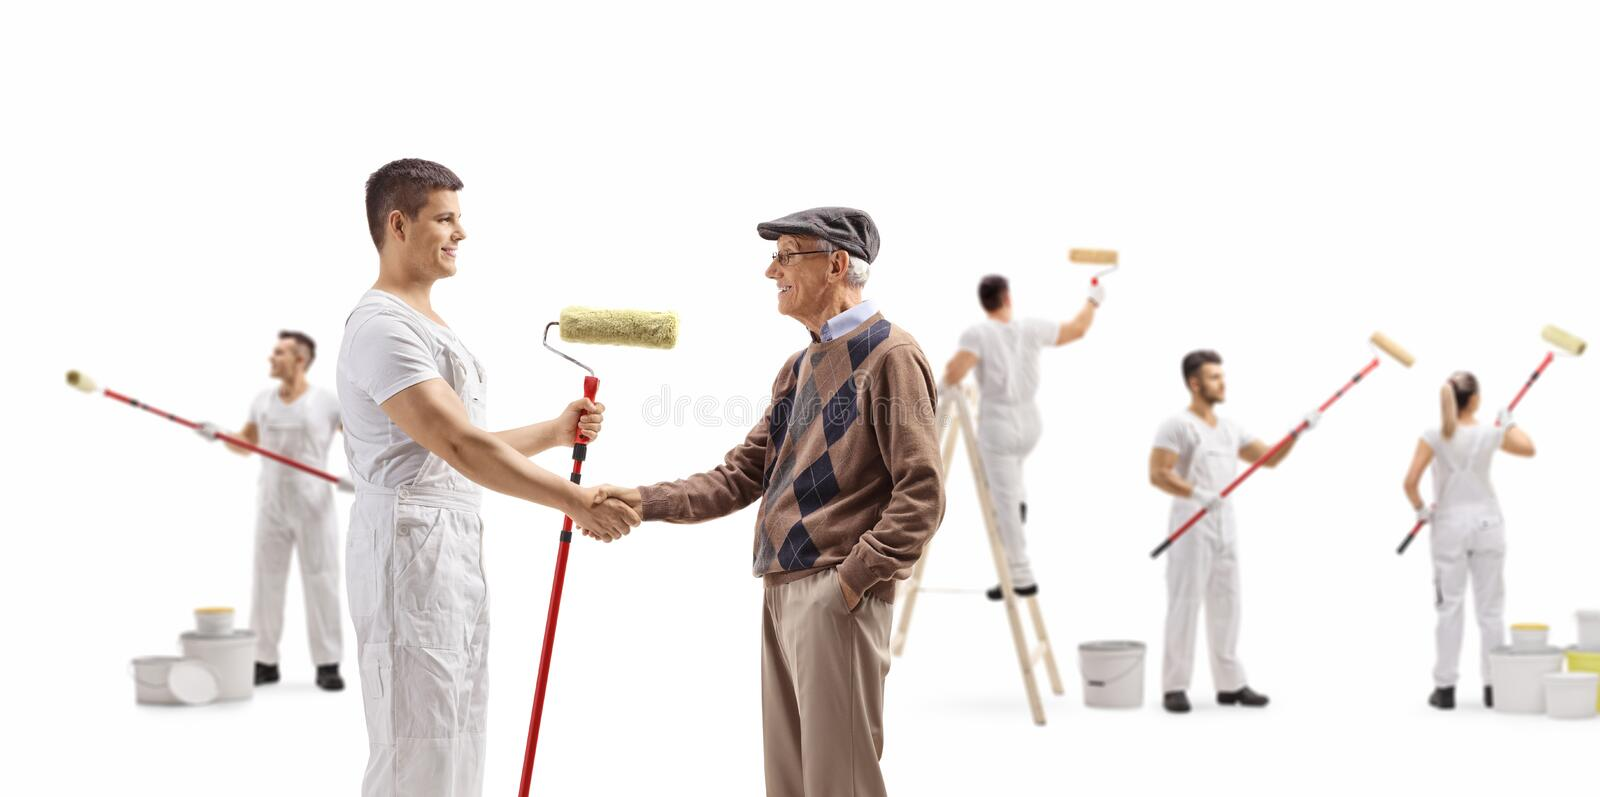 Decorator with a roller painter shaking hands with a senior and people painting wall royalty free stock photo